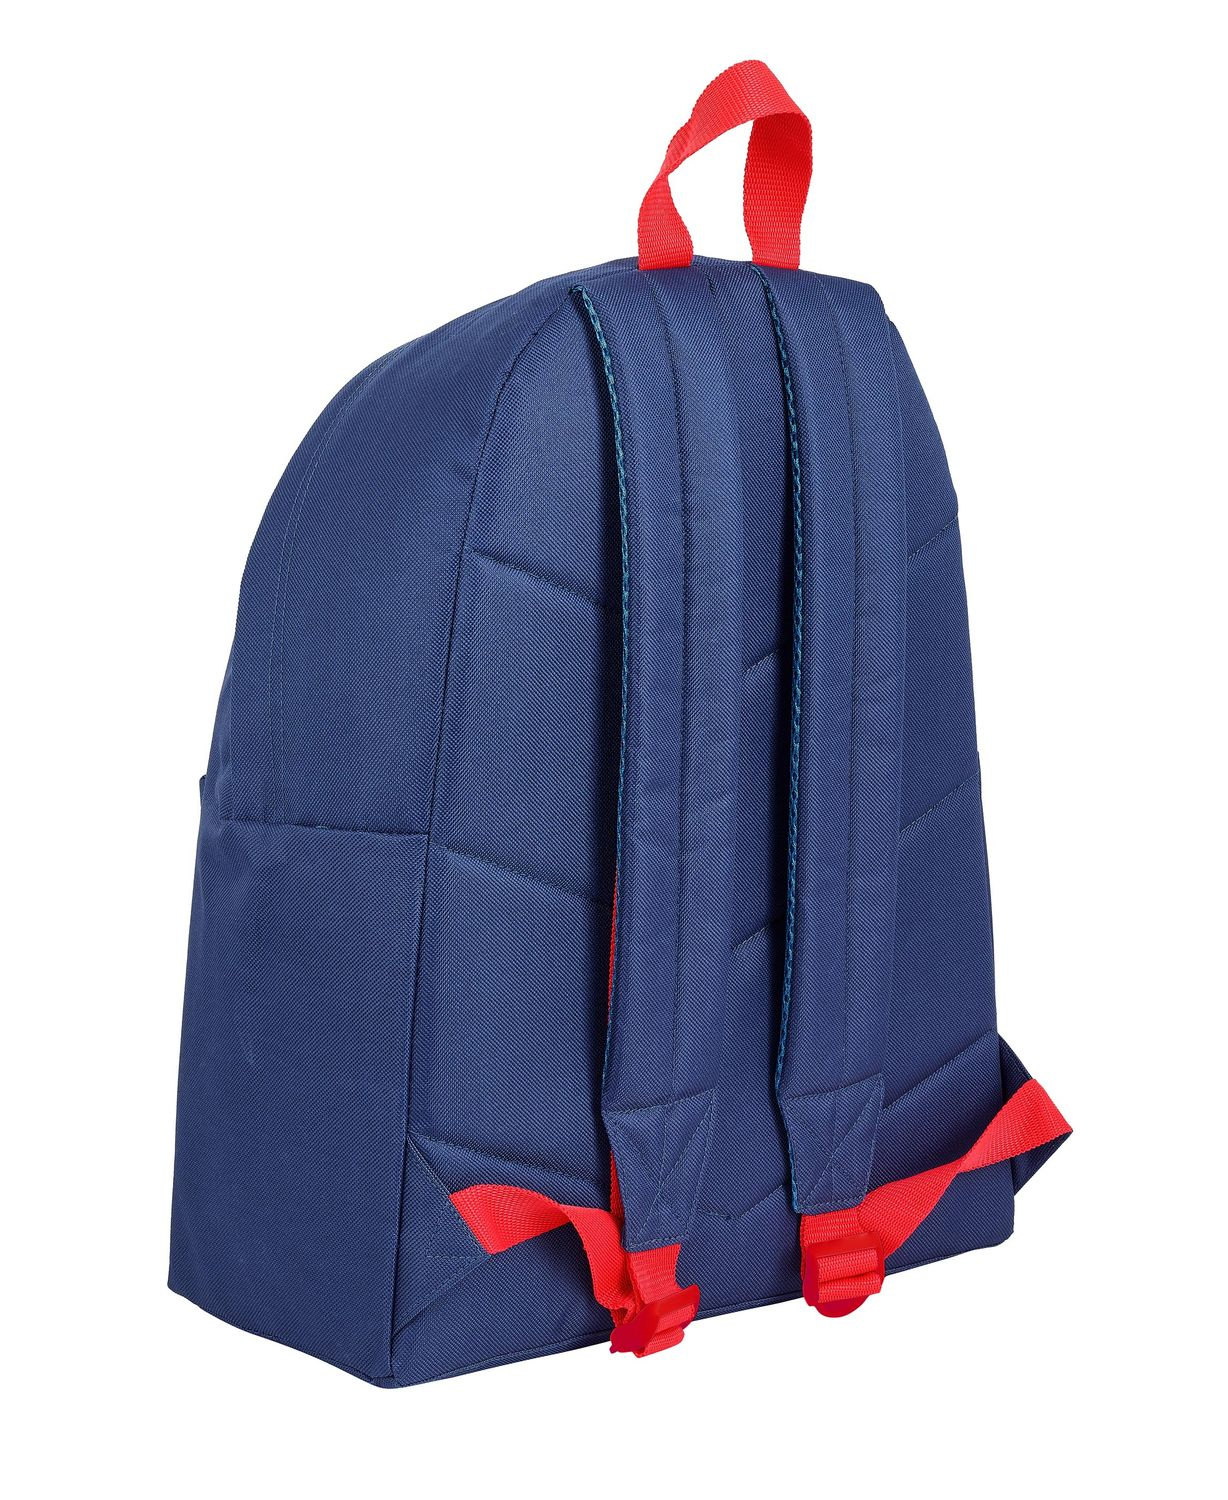 BENETTON MIDNIGHT Backpack 42 cm – image 2